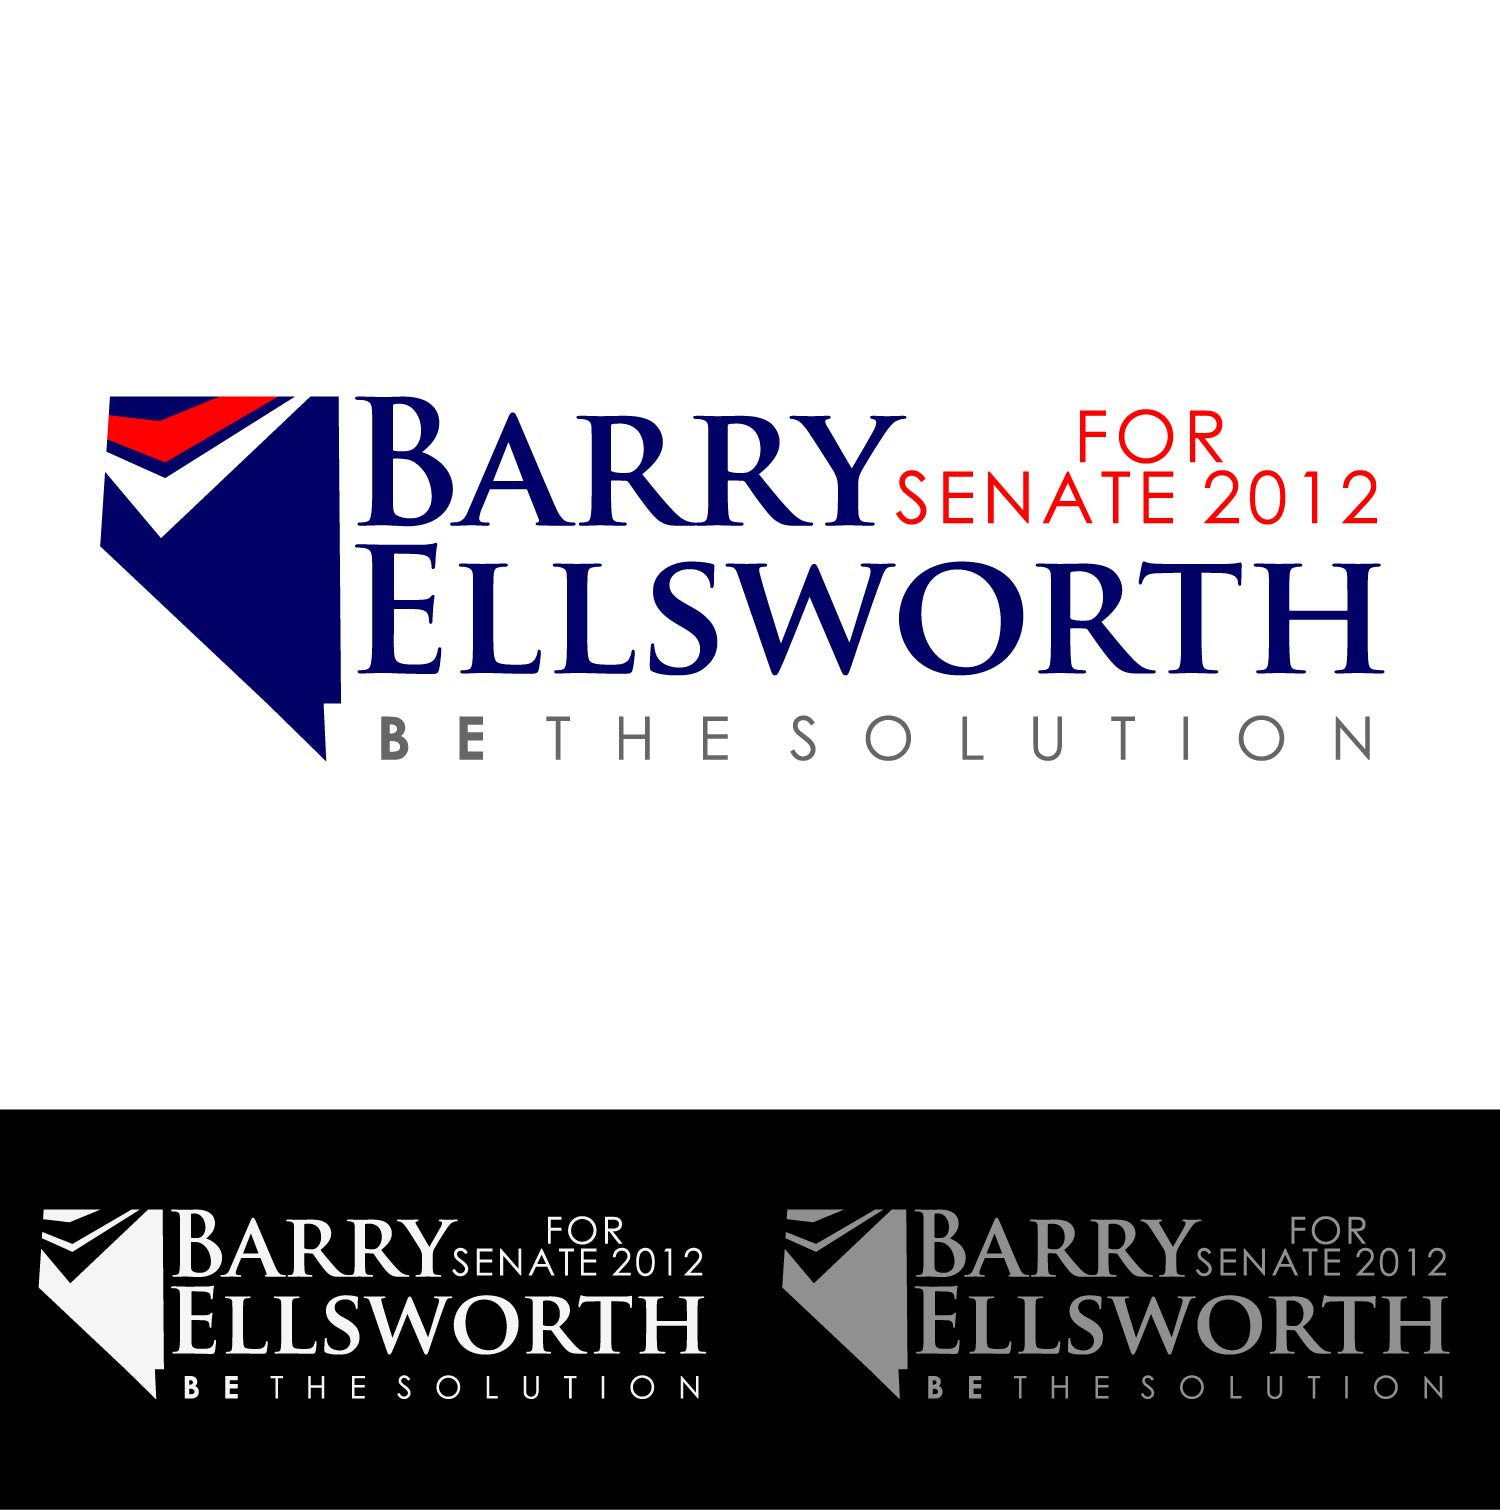 Help Barry Ellsworth for Senate 2012 with a new logo